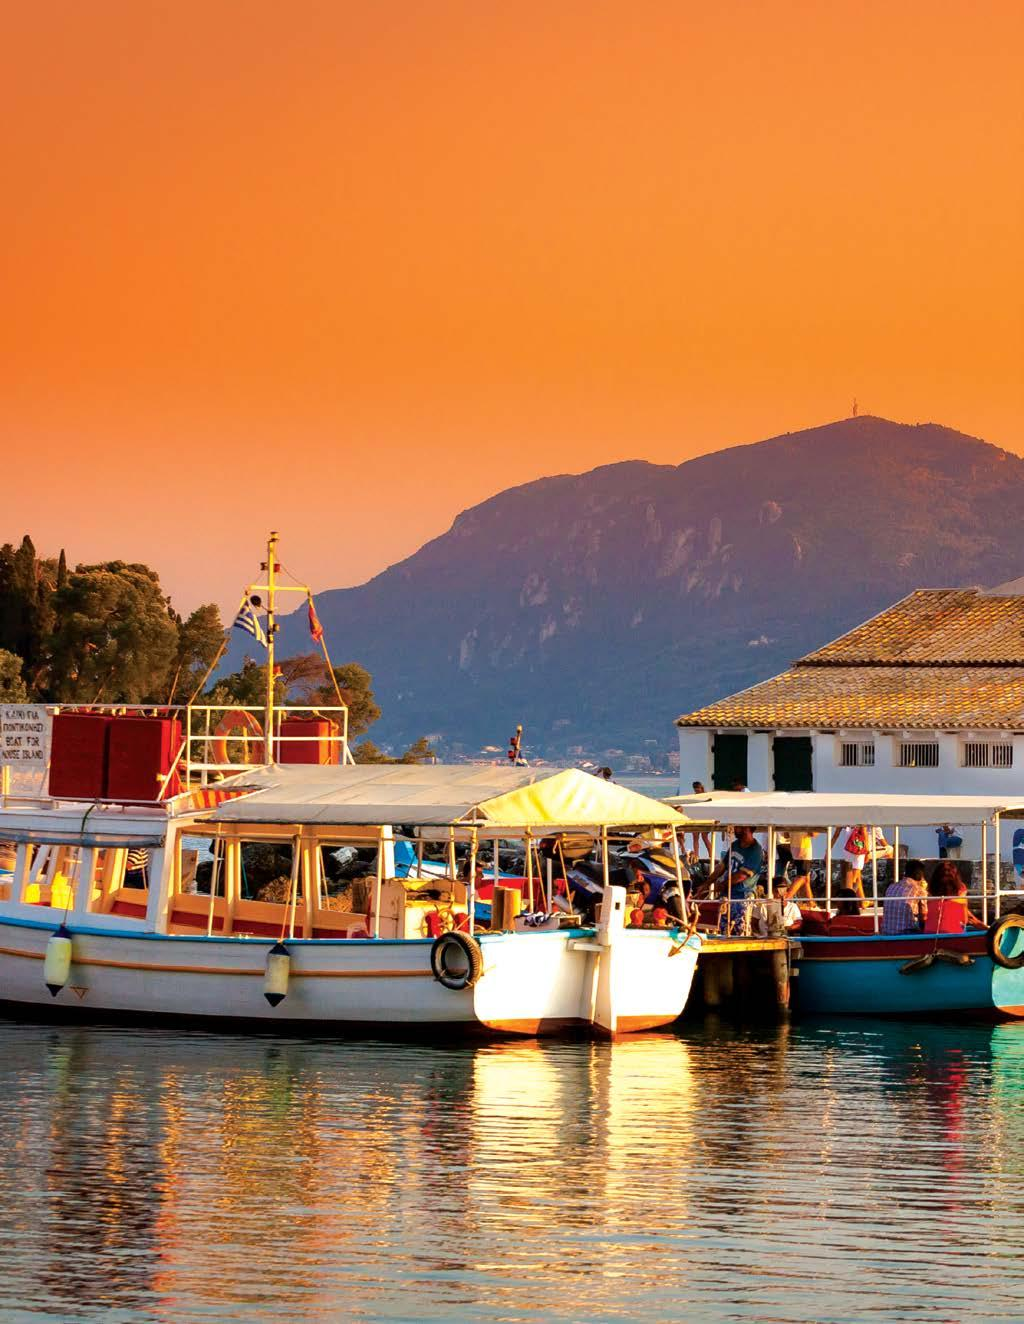 Dear Club Members and Friends, Known as the Cradle of Western Civilization, Greece delivers an enticing blend of history, diverse cultural influences, stunning natural beauty, and archaeological